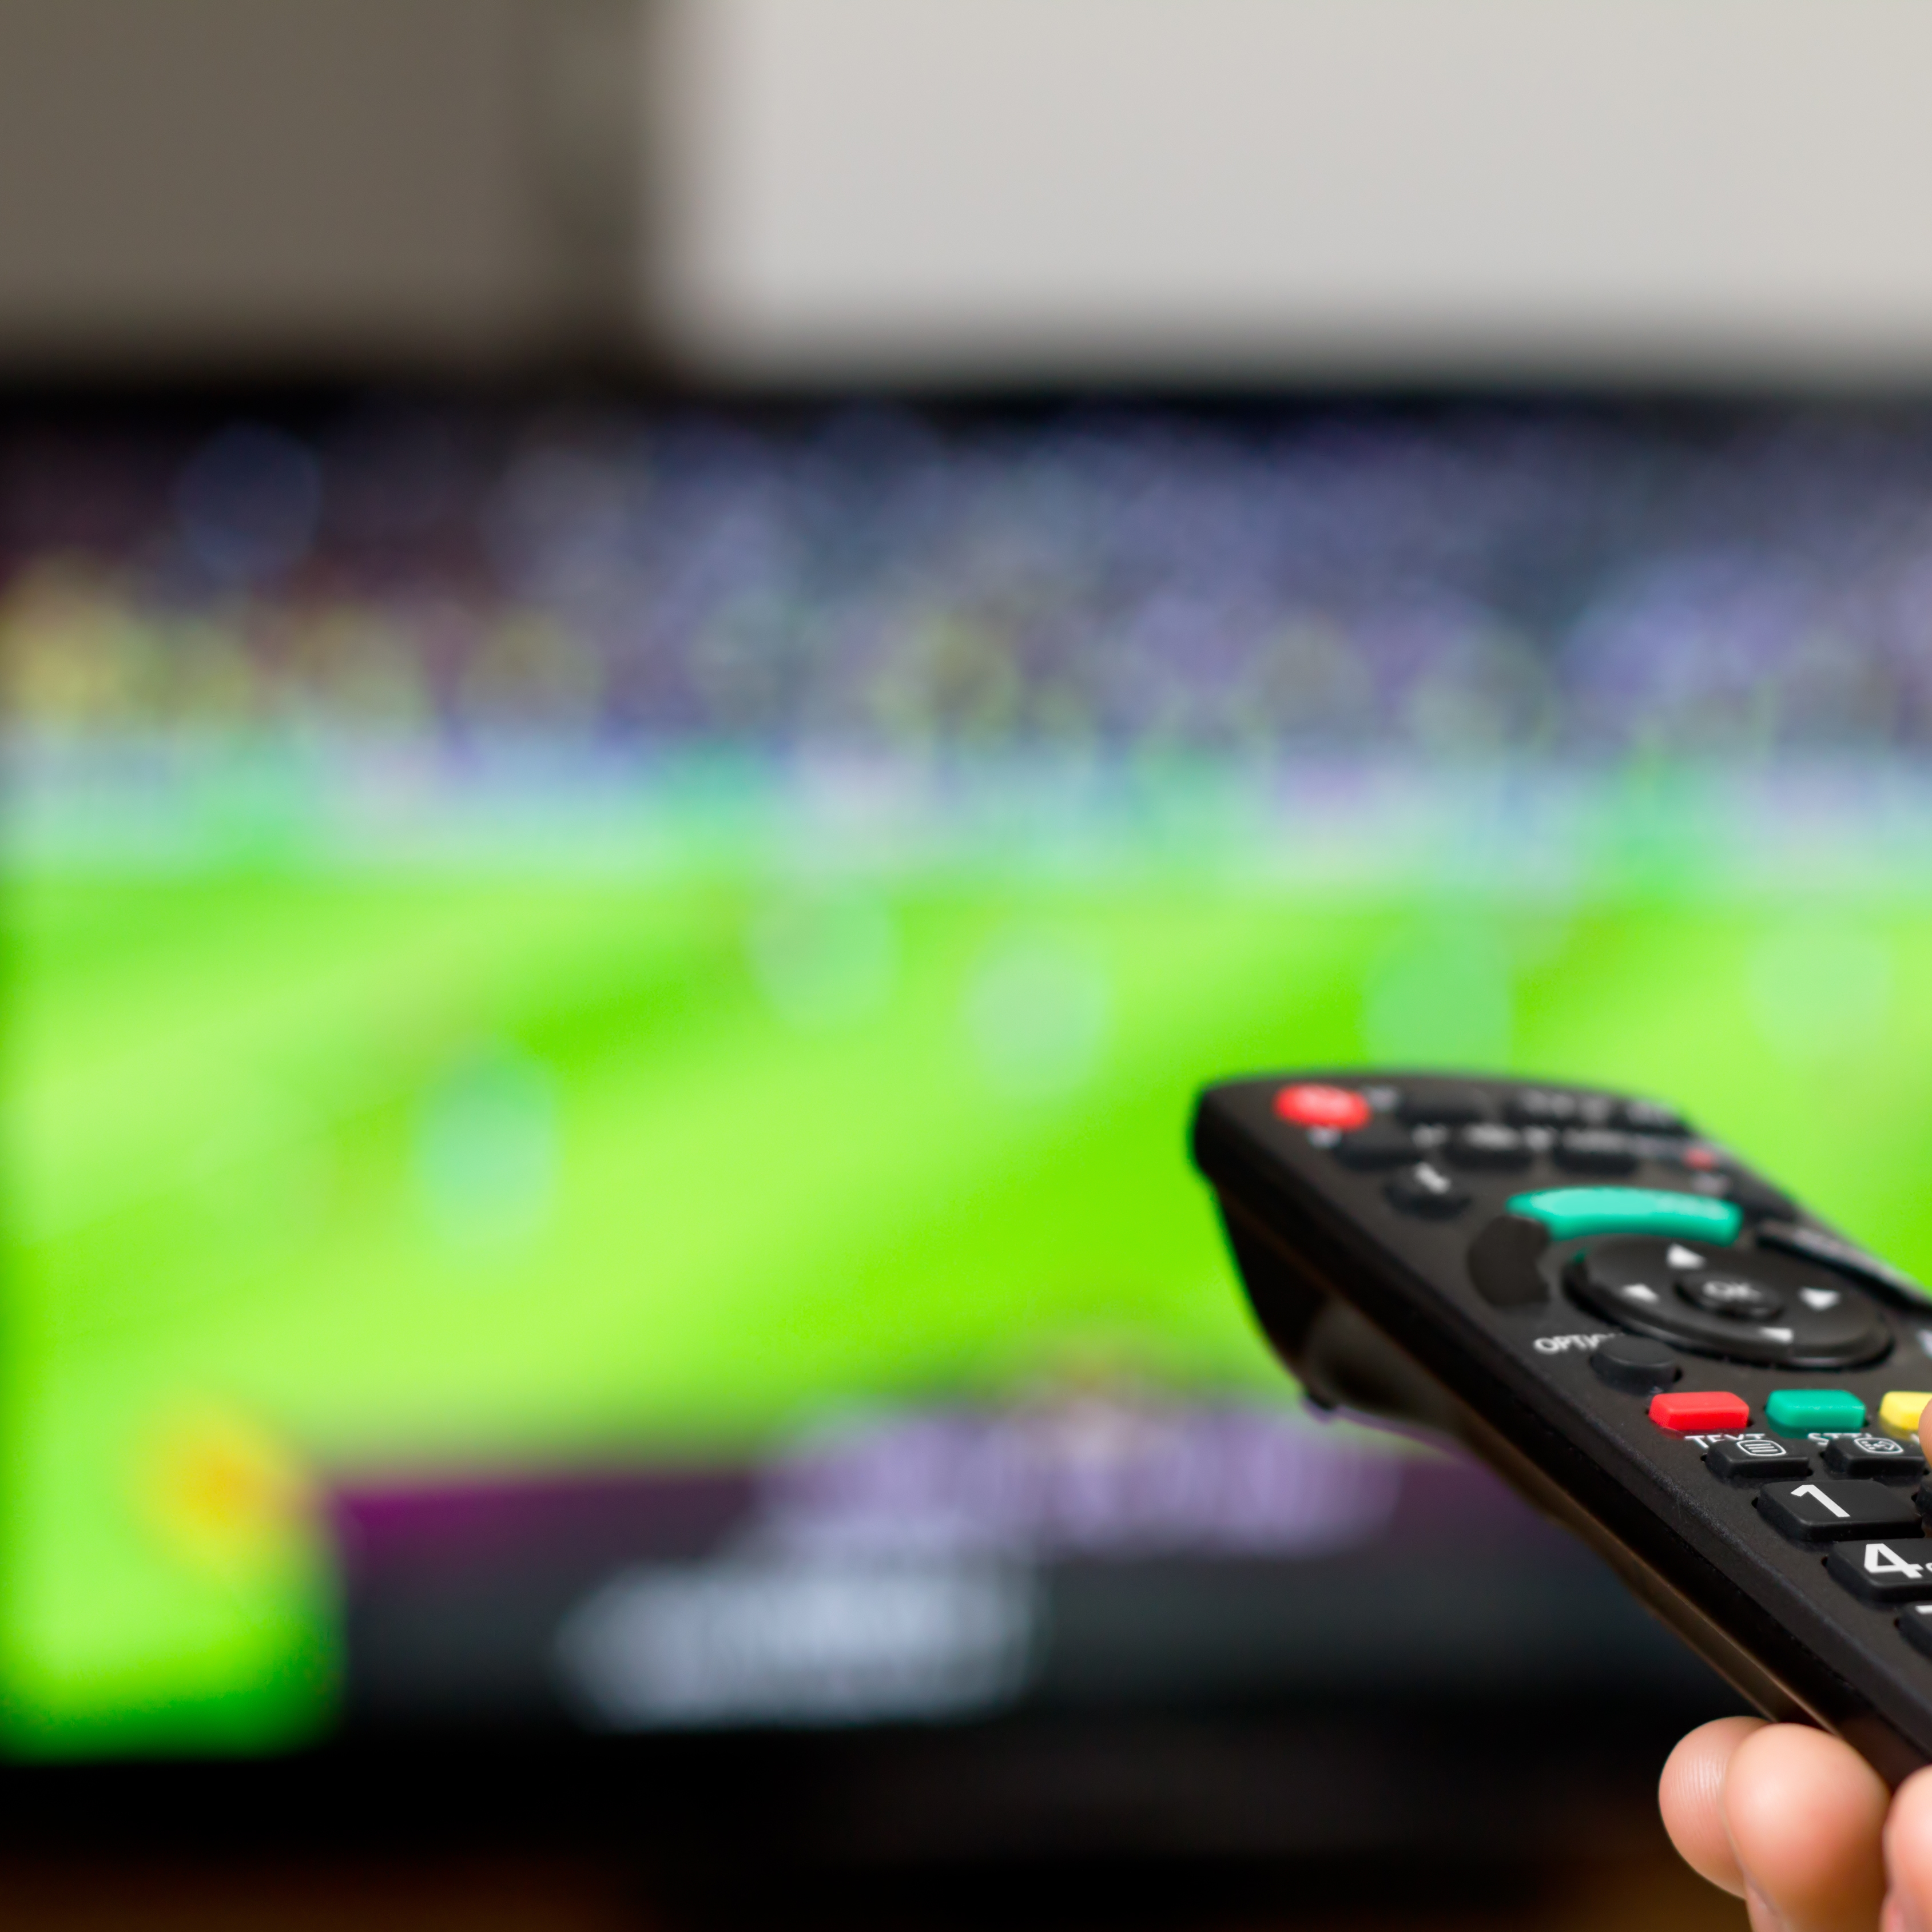 BT Sport offers 50% bill credit for June as Premier League announces return